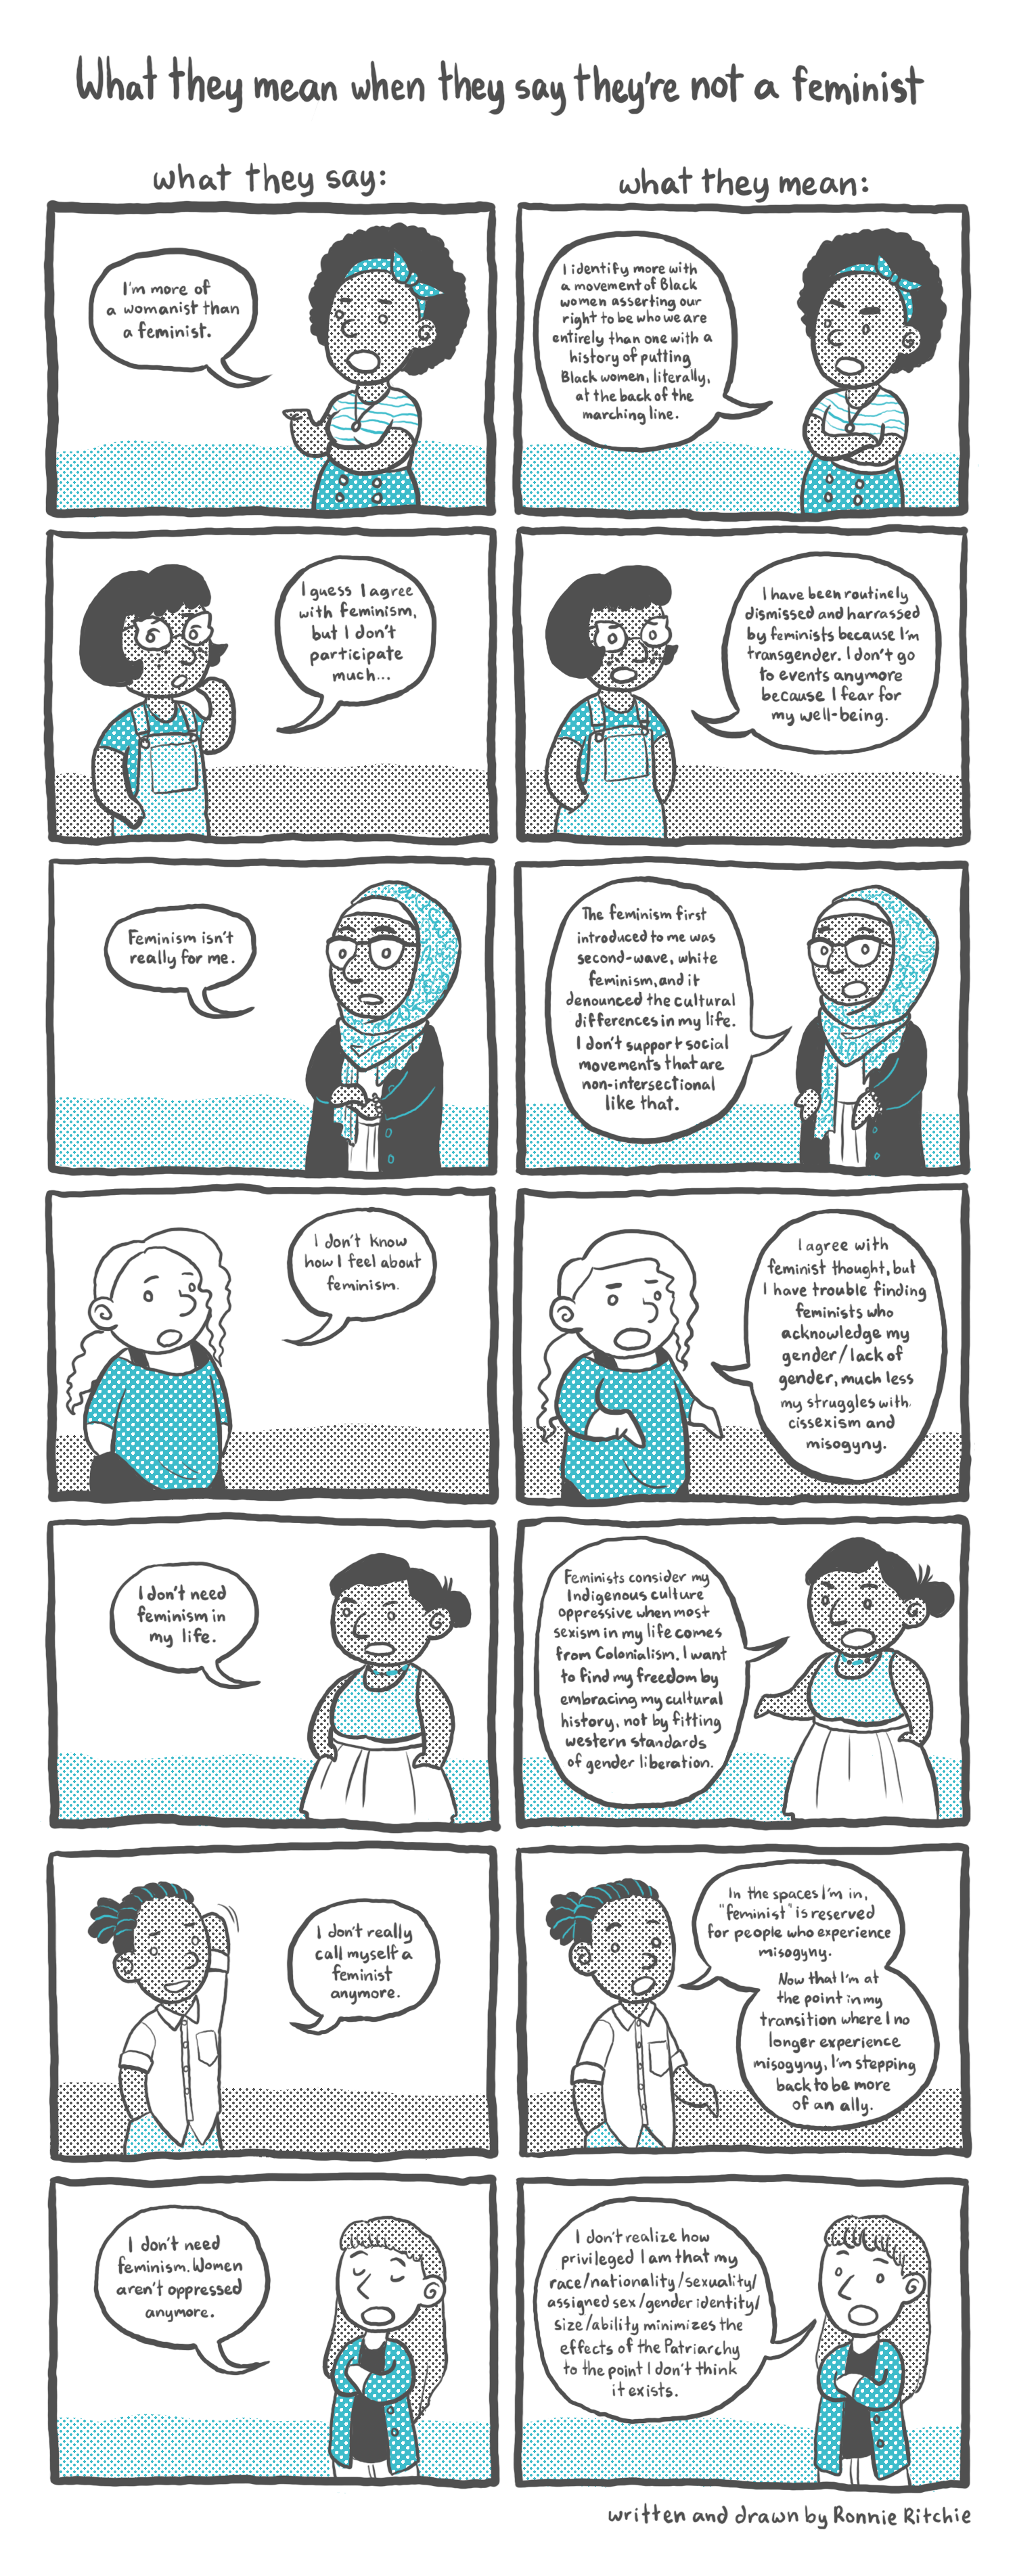 What they may mean when they say they're not feminist  comic